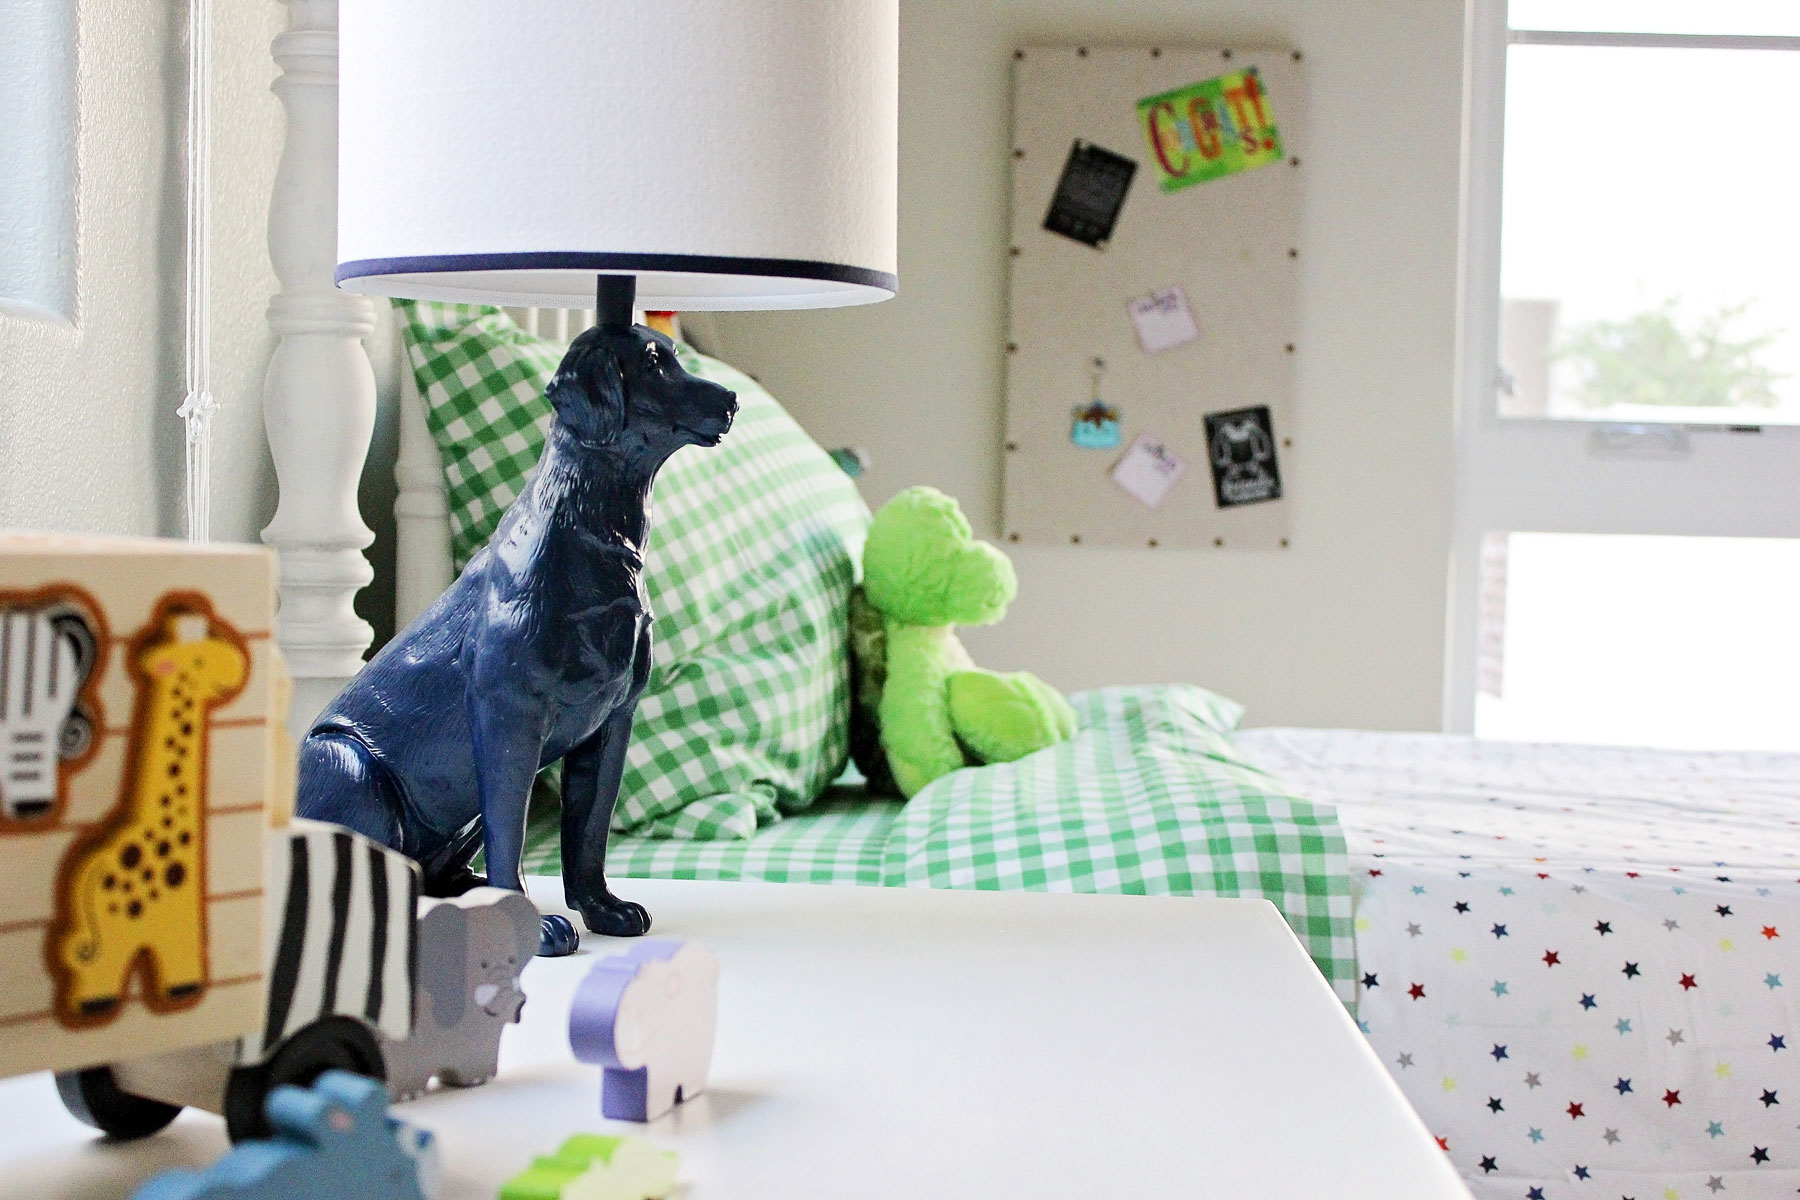 contemporary-kids-room-boy-dog-lamp-gingham-rollins-andrew.jpg